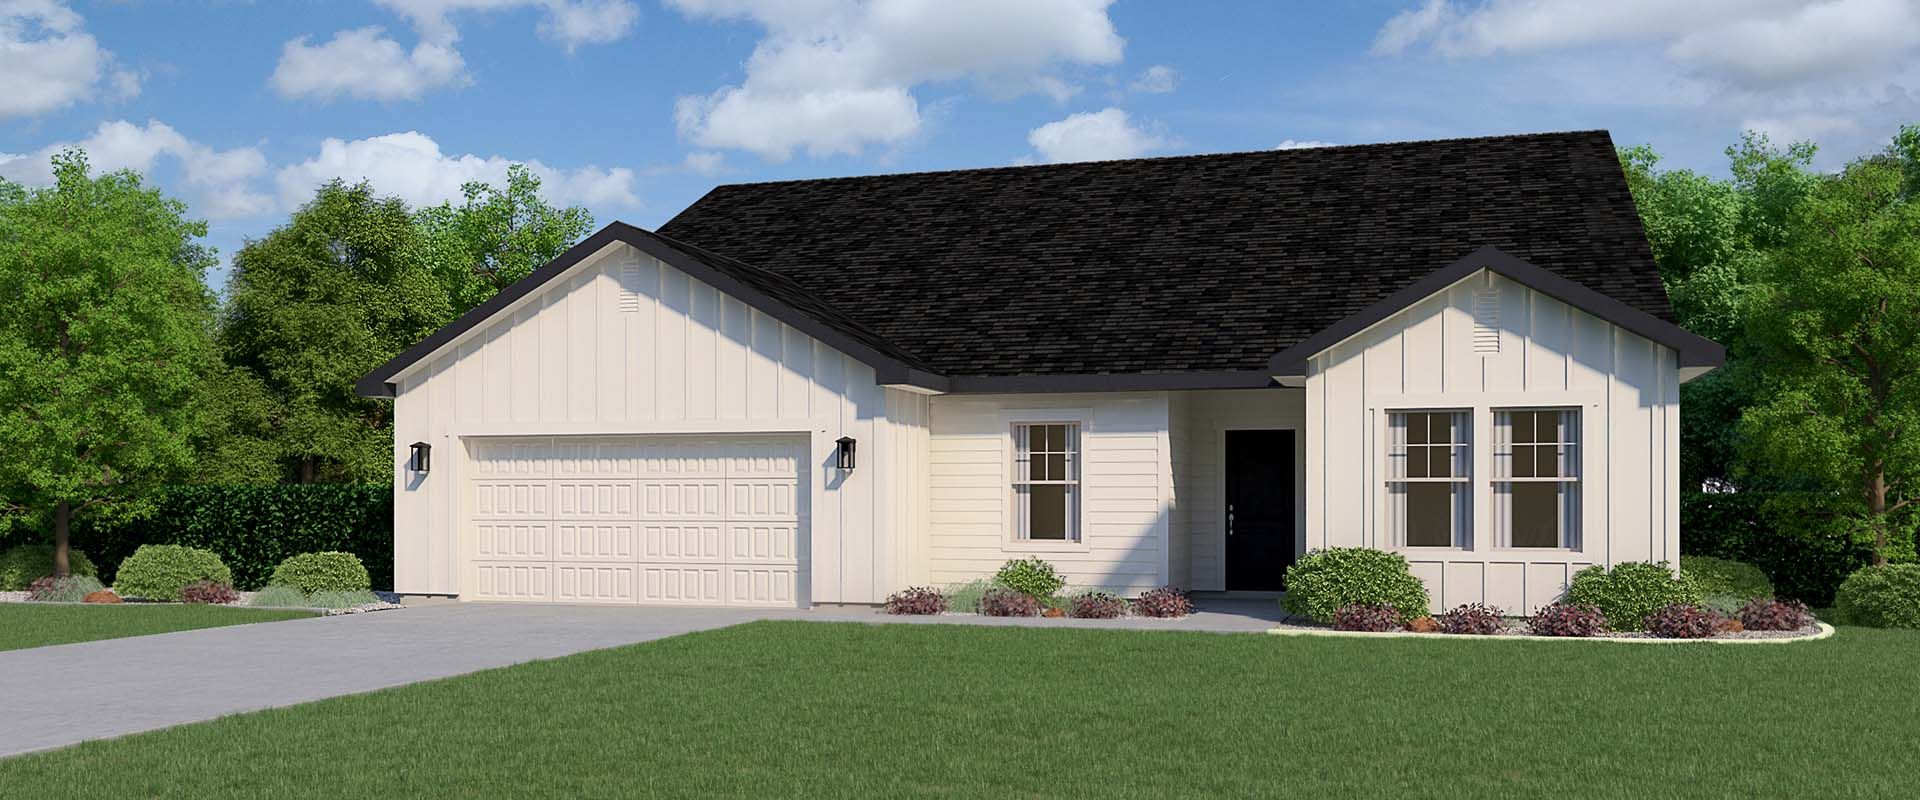 new-homes-boise-idaho-hubble-homes_0020_Opal Bonus Traditional pack 32.jpg